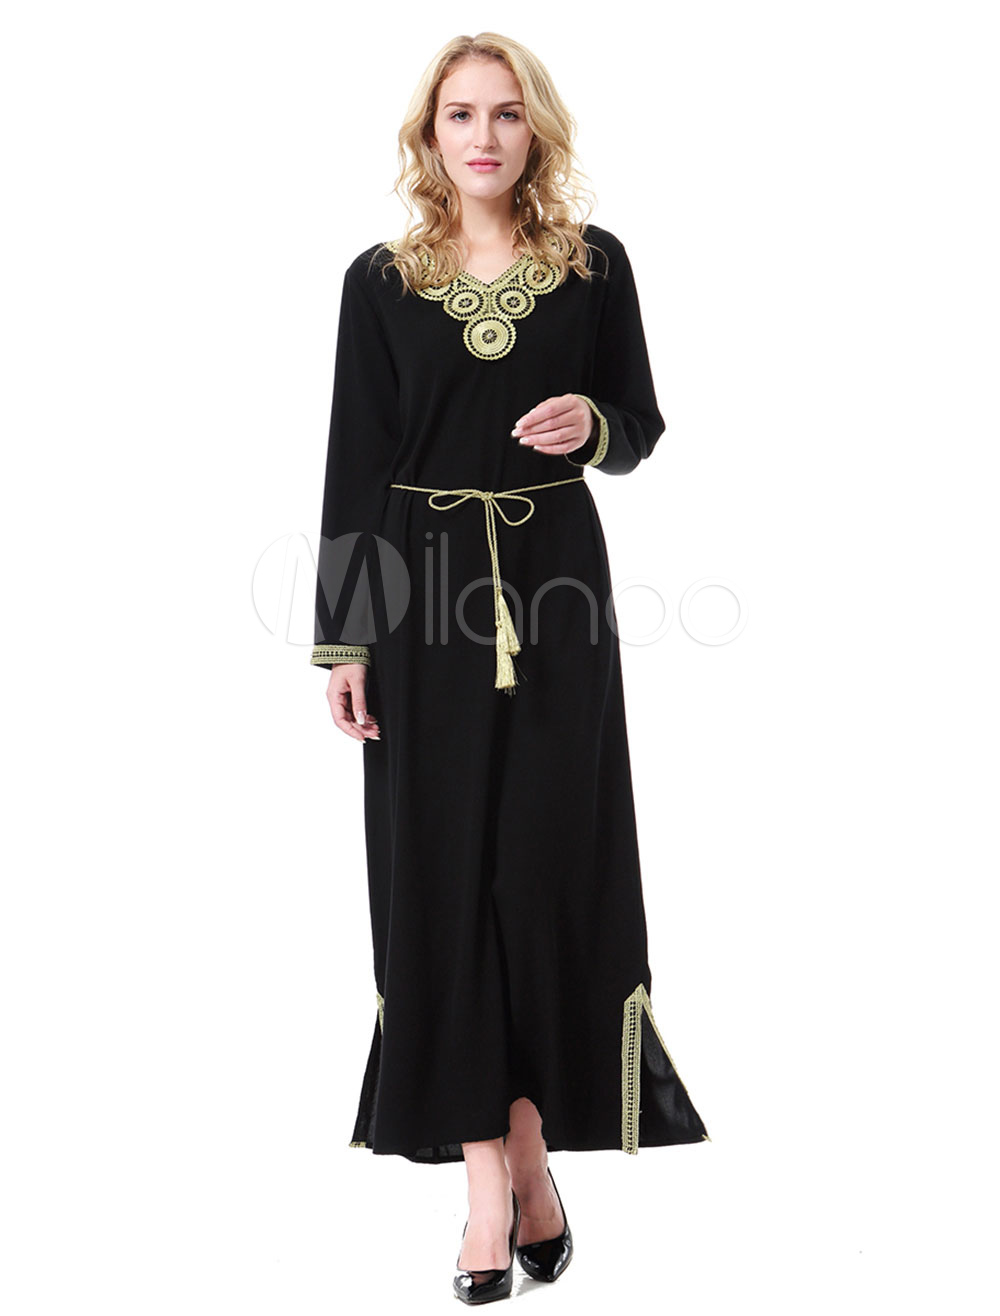 Buy Long Sleeve Abaya Dress V Neck Maxi Dress Applique Two Tone Muslim Dress for $26.99 in Milanoo store